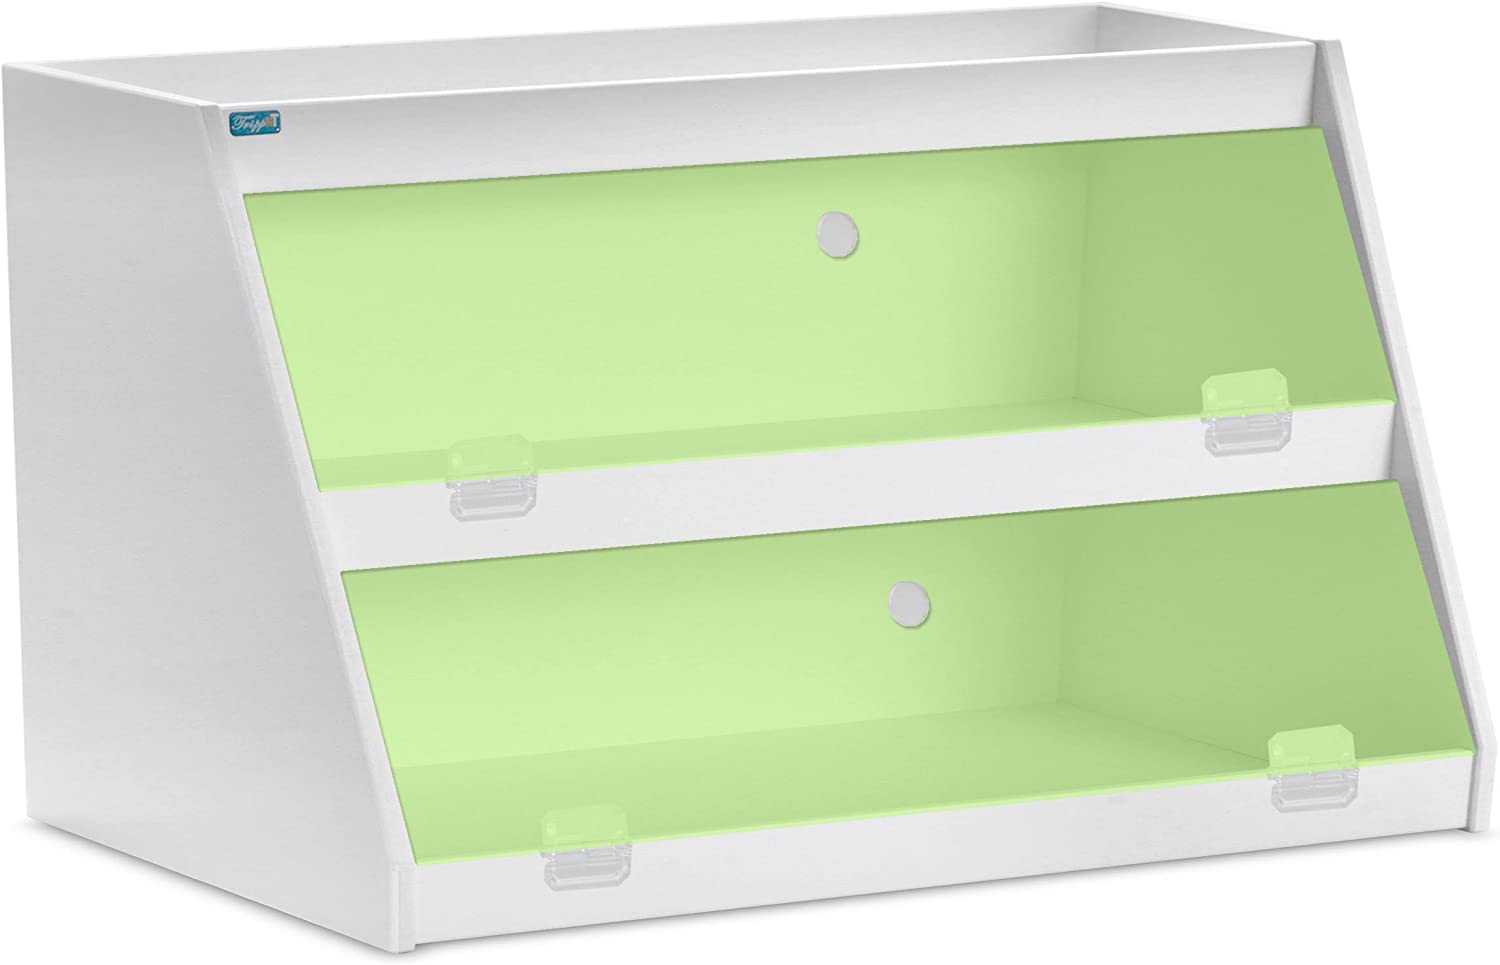 TrippNT 50479 PVC Angled Triple Safety Shelves with Green Door, 24-Inch Width x 12-Inch Height x 9-Inch Depth, Green White